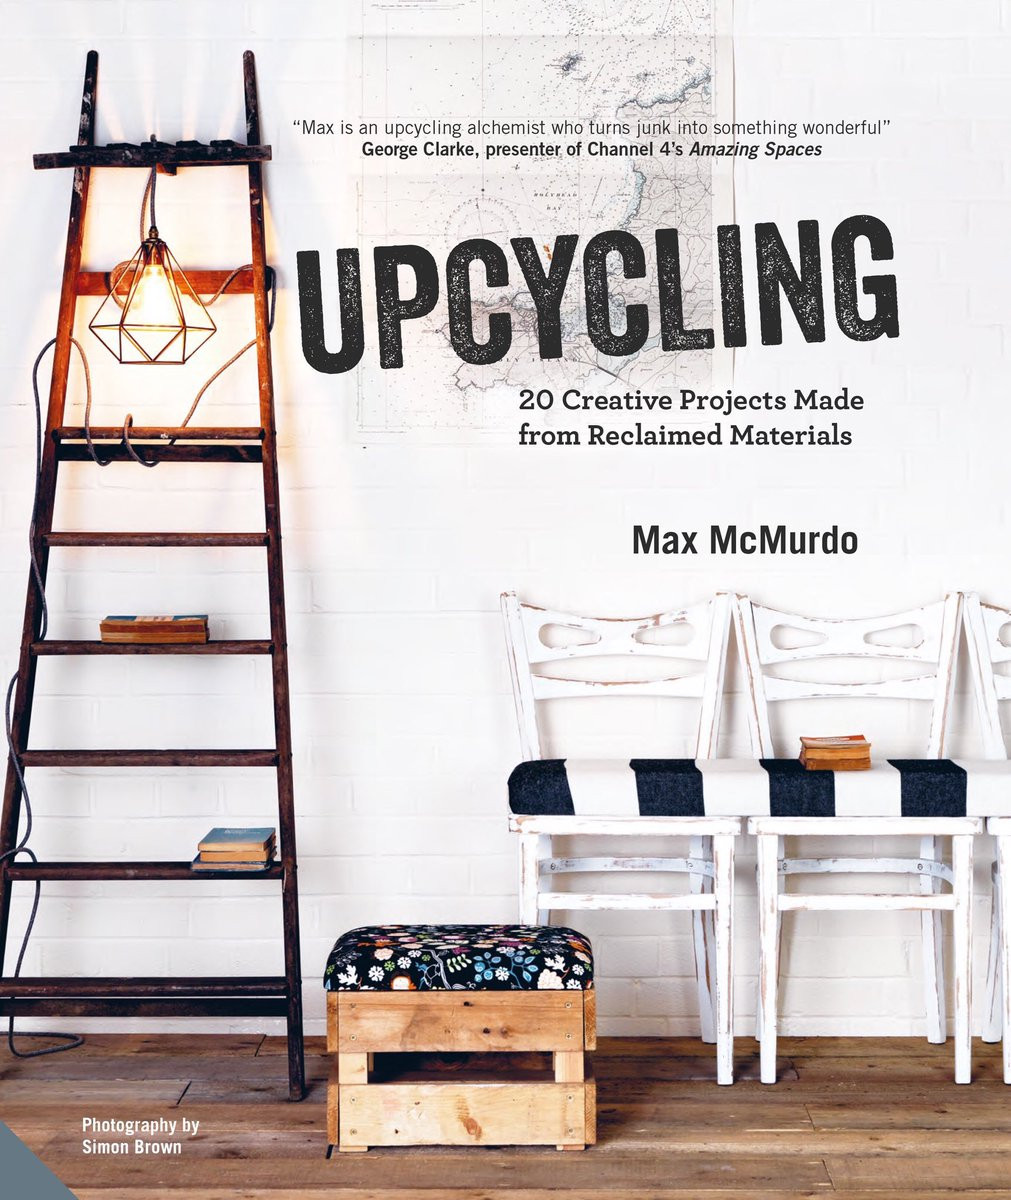 book review interview upcycling by max mcmurdo. Black Bedroom Furniture Sets. Home Design Ideas